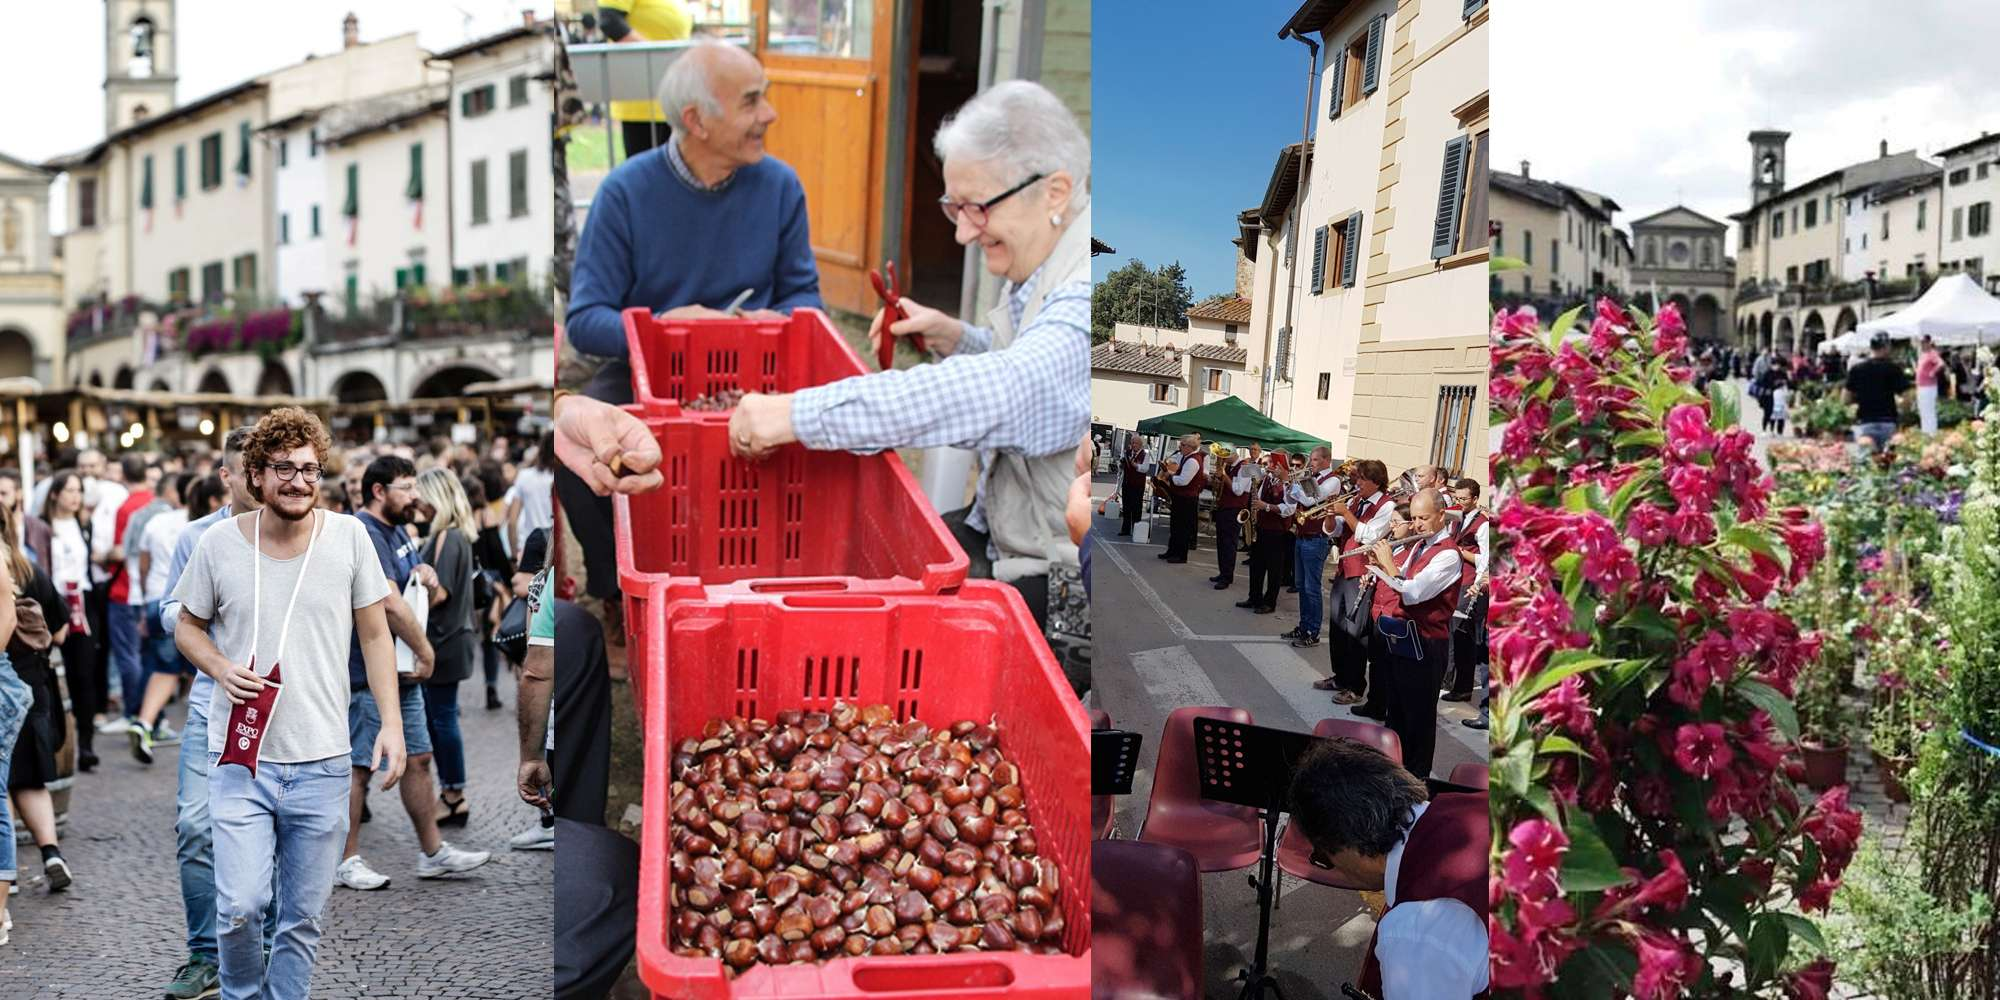 A Year of Many Events: 2019 in Greve in Chianti